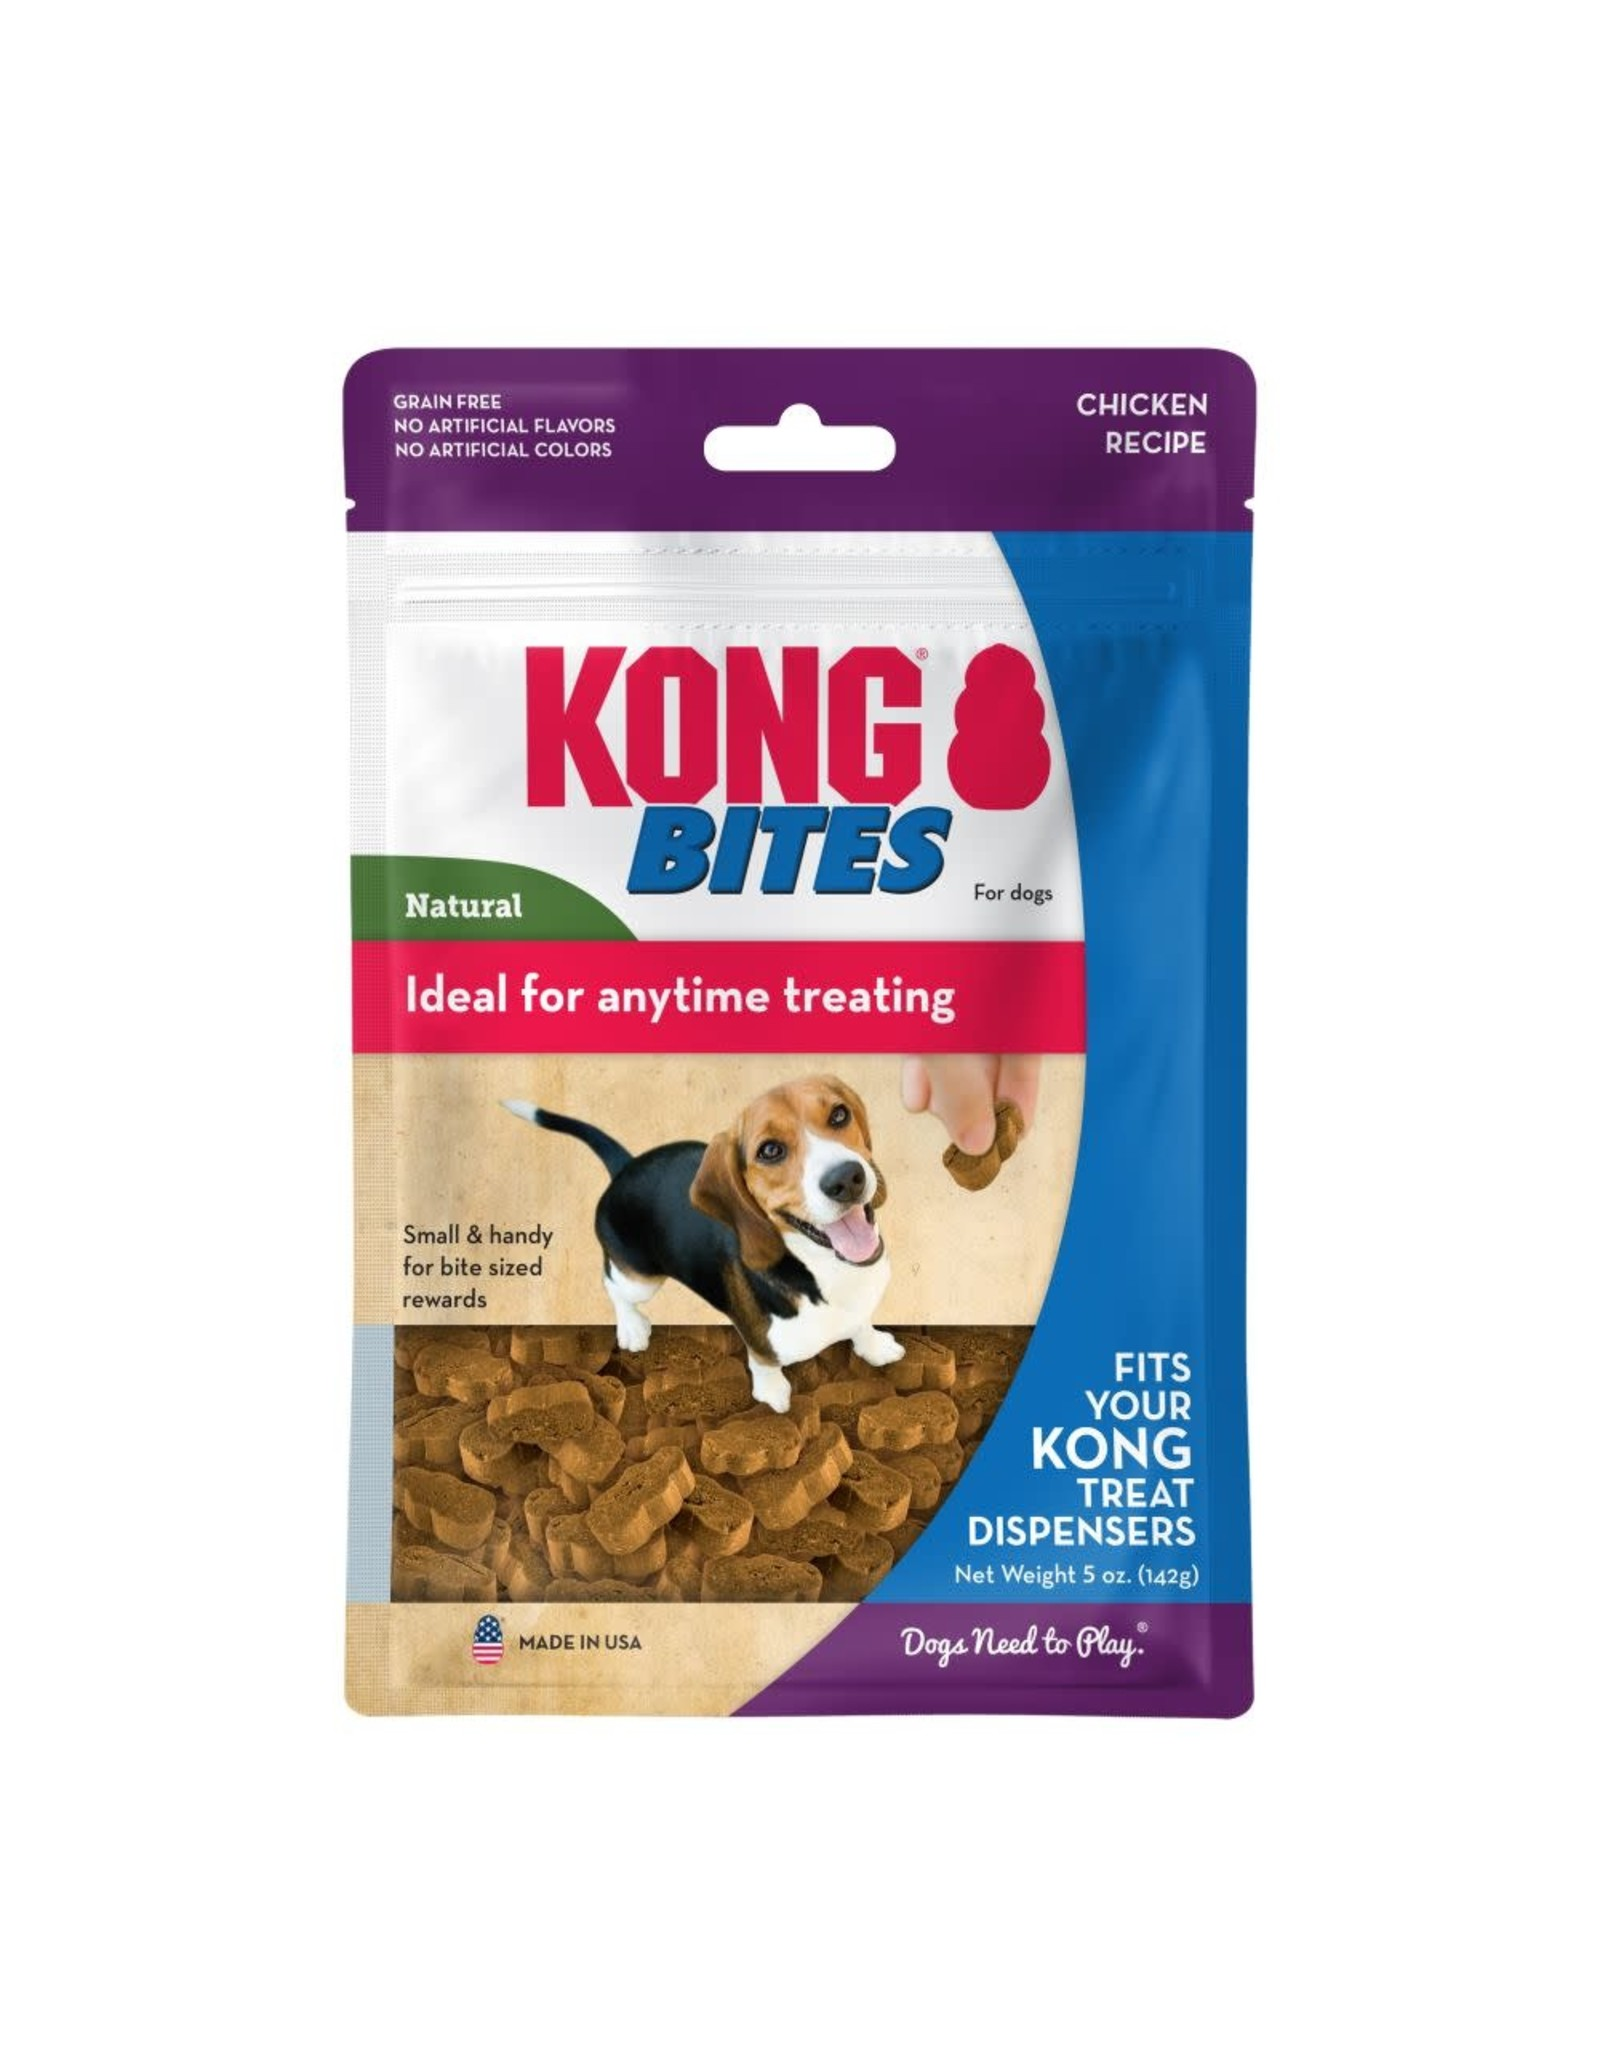 KONG Bites Chicken Dog Treats, 142g